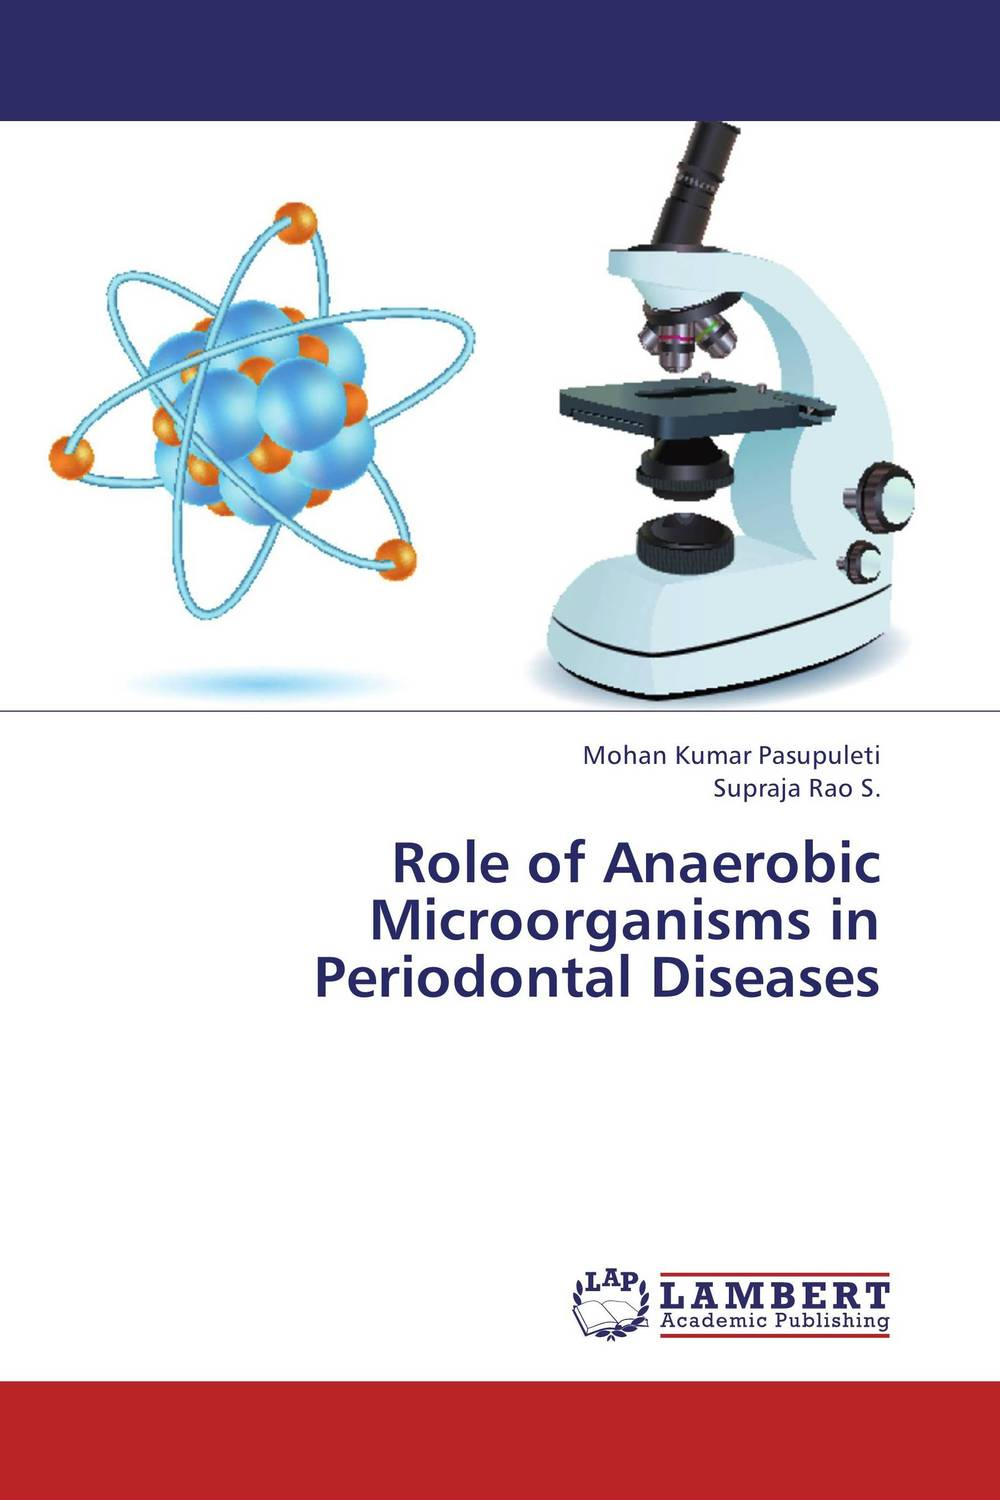 Role of Anaerobic Microorganisms in Periodontal Diseases mann dido anaerobic fermentation of spent grains